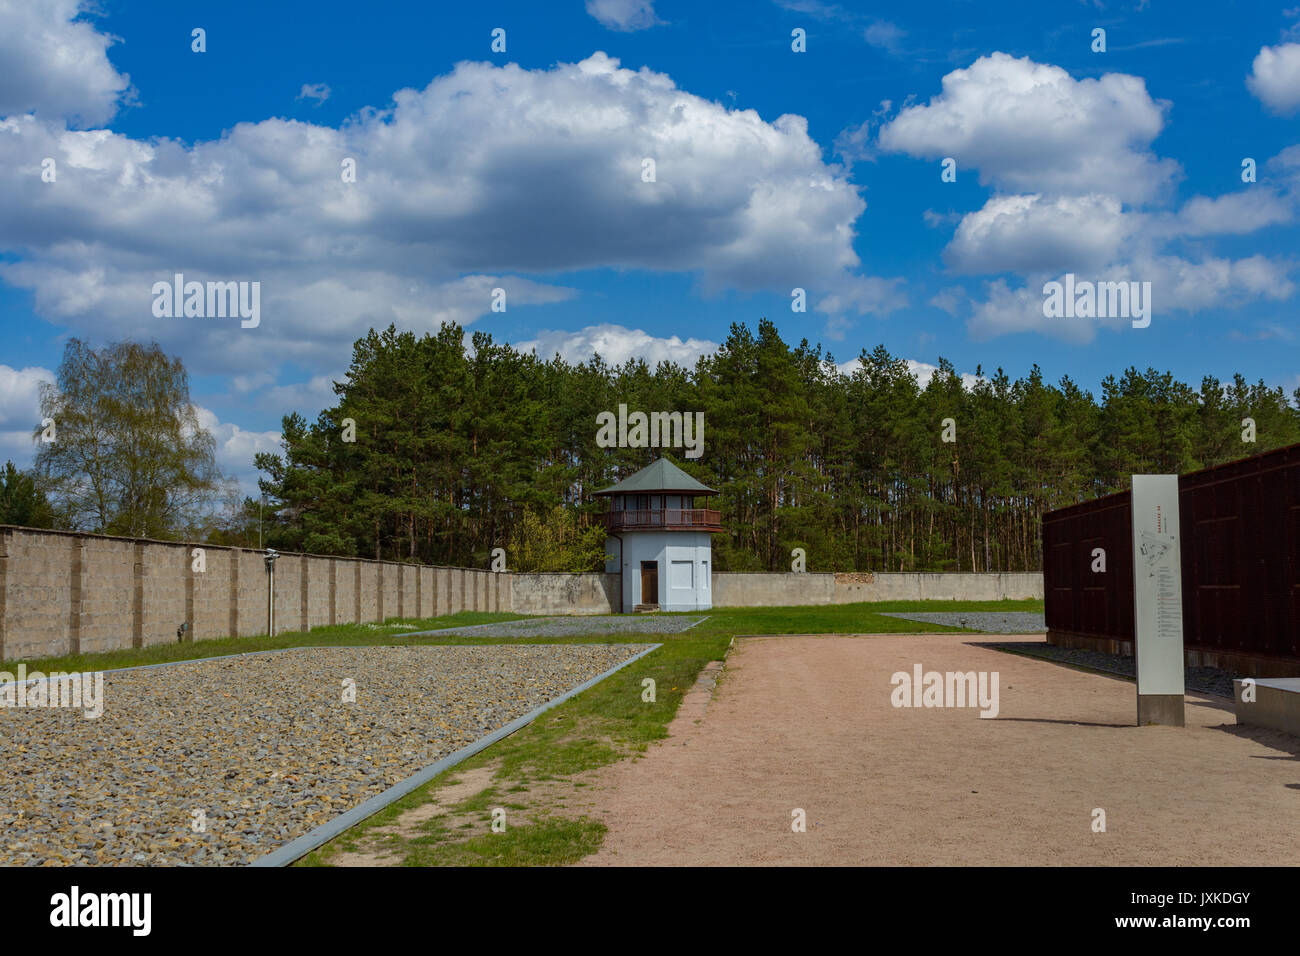 perimeter and watchtower at Sachsenhausen concentration camp memorial site - Stock Image